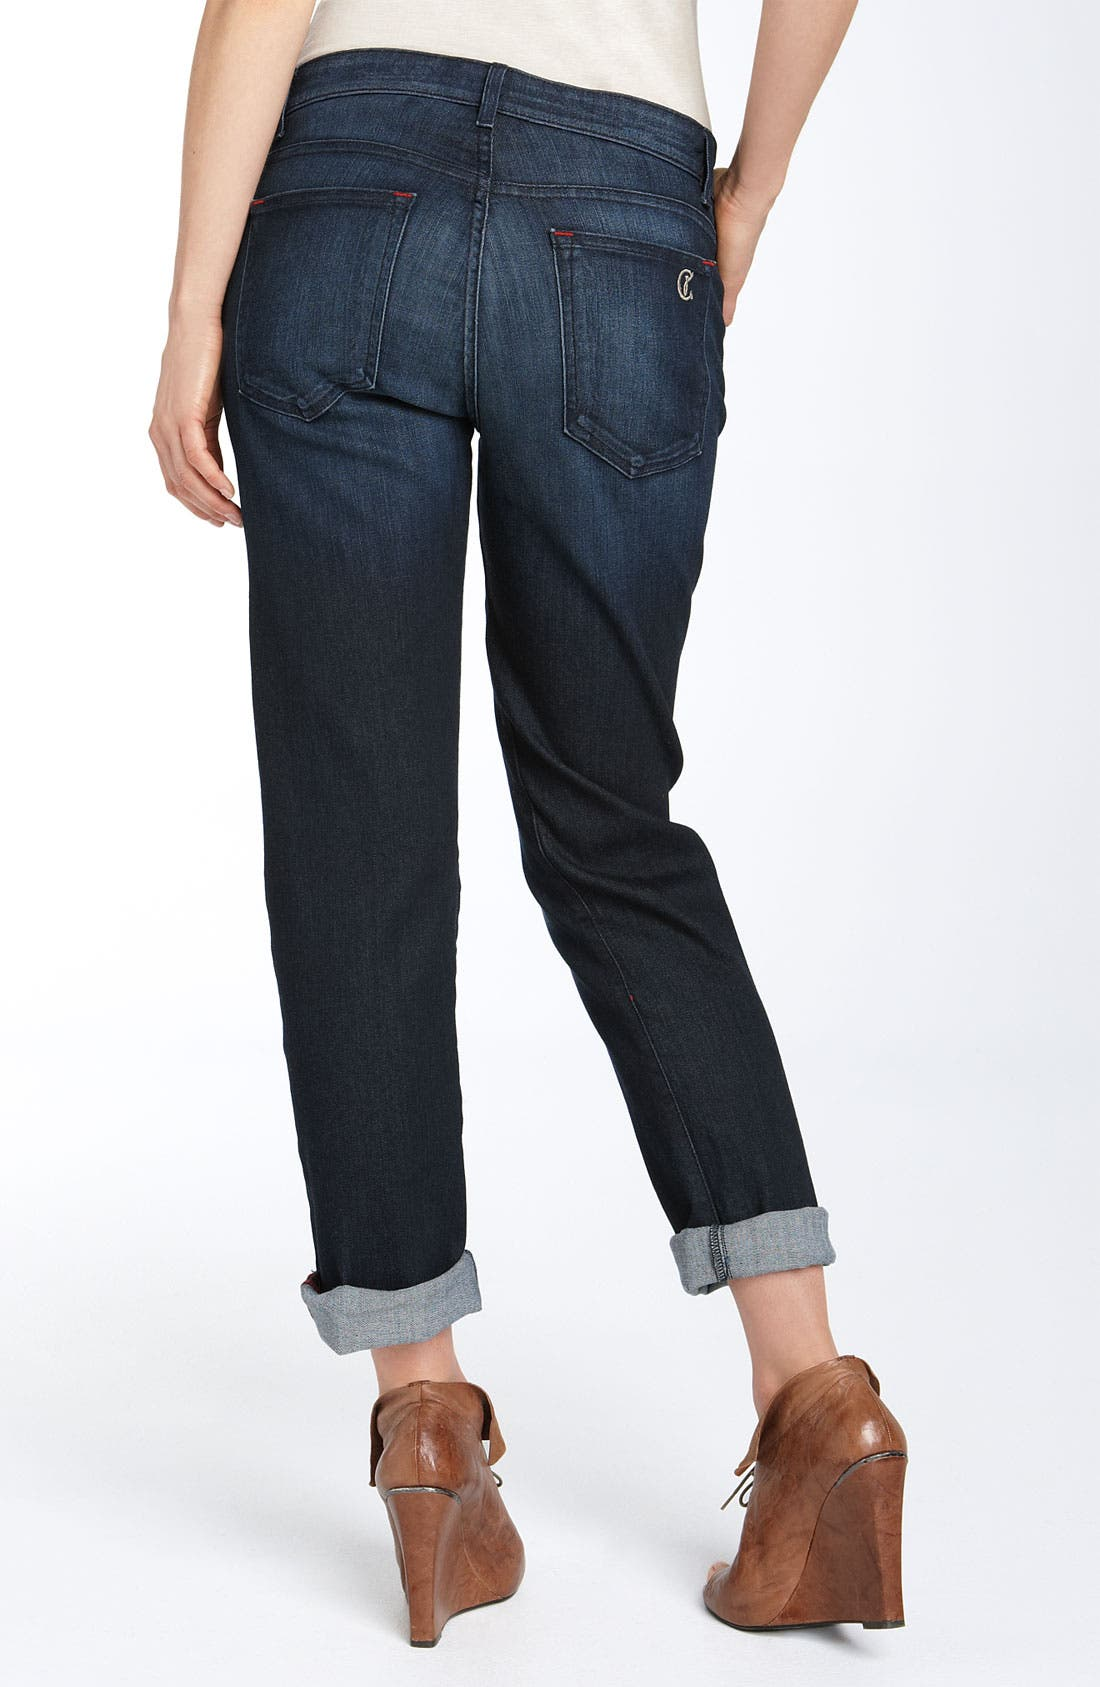 Main Image - CJ by Cookie Johnson 'Praise' Relaxed Cropped Jeans (Blue Iris Rinse Wash)